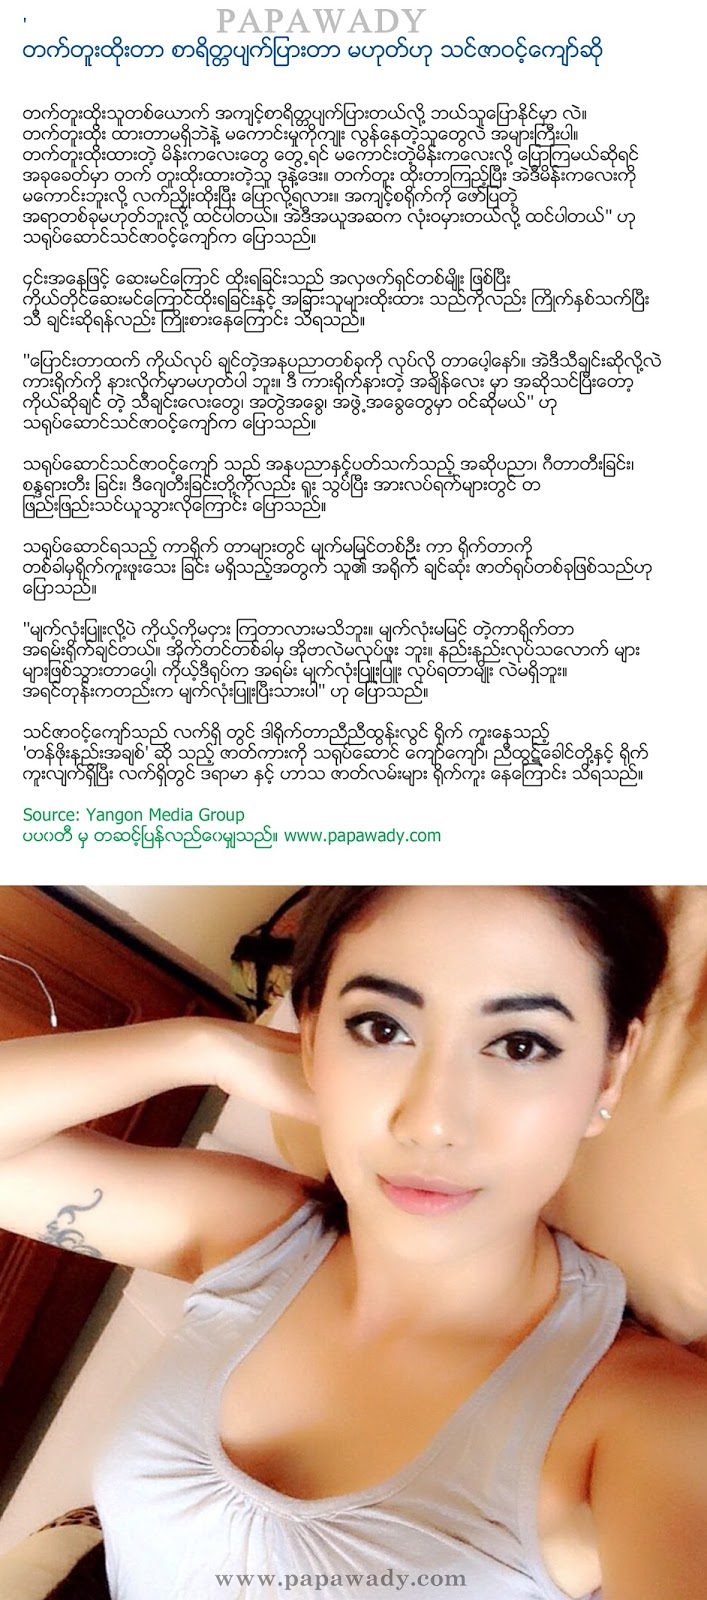 Tattoo Is Creation But Not Like Having Bad Character Says By Thinzar Wint Kyaw